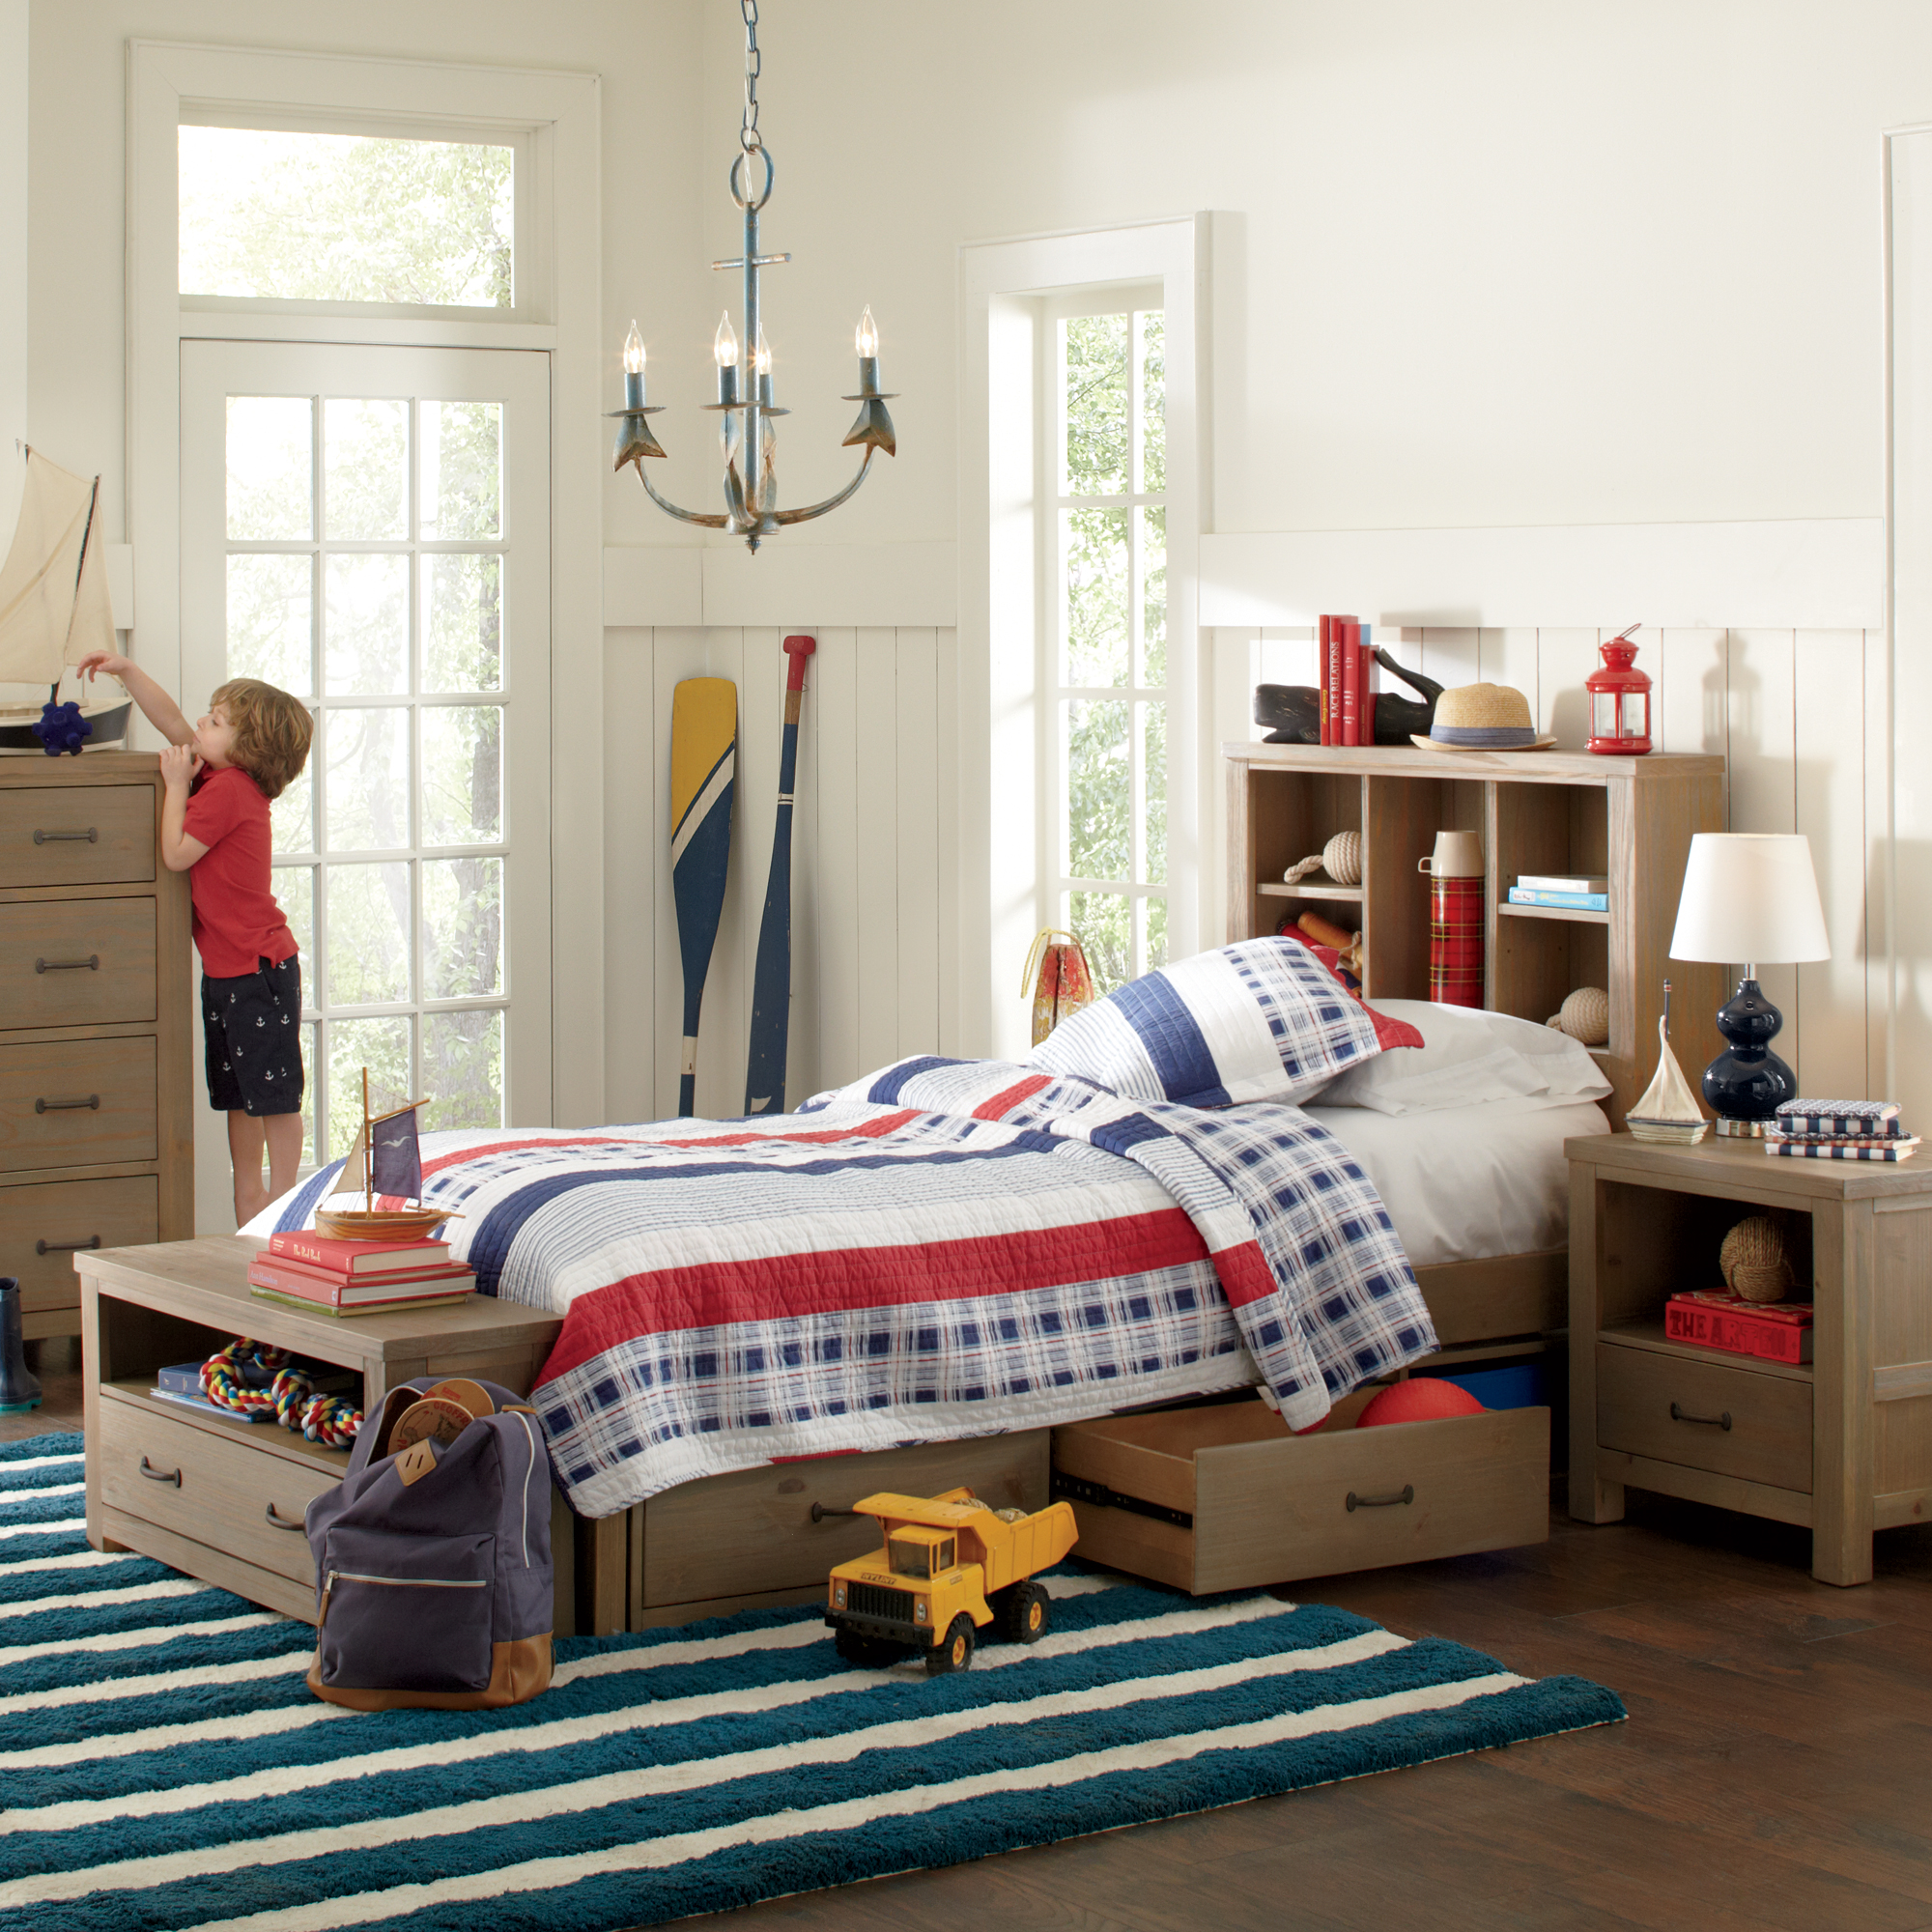 Farmhouse & Rustic Kids Bedroom Furniture